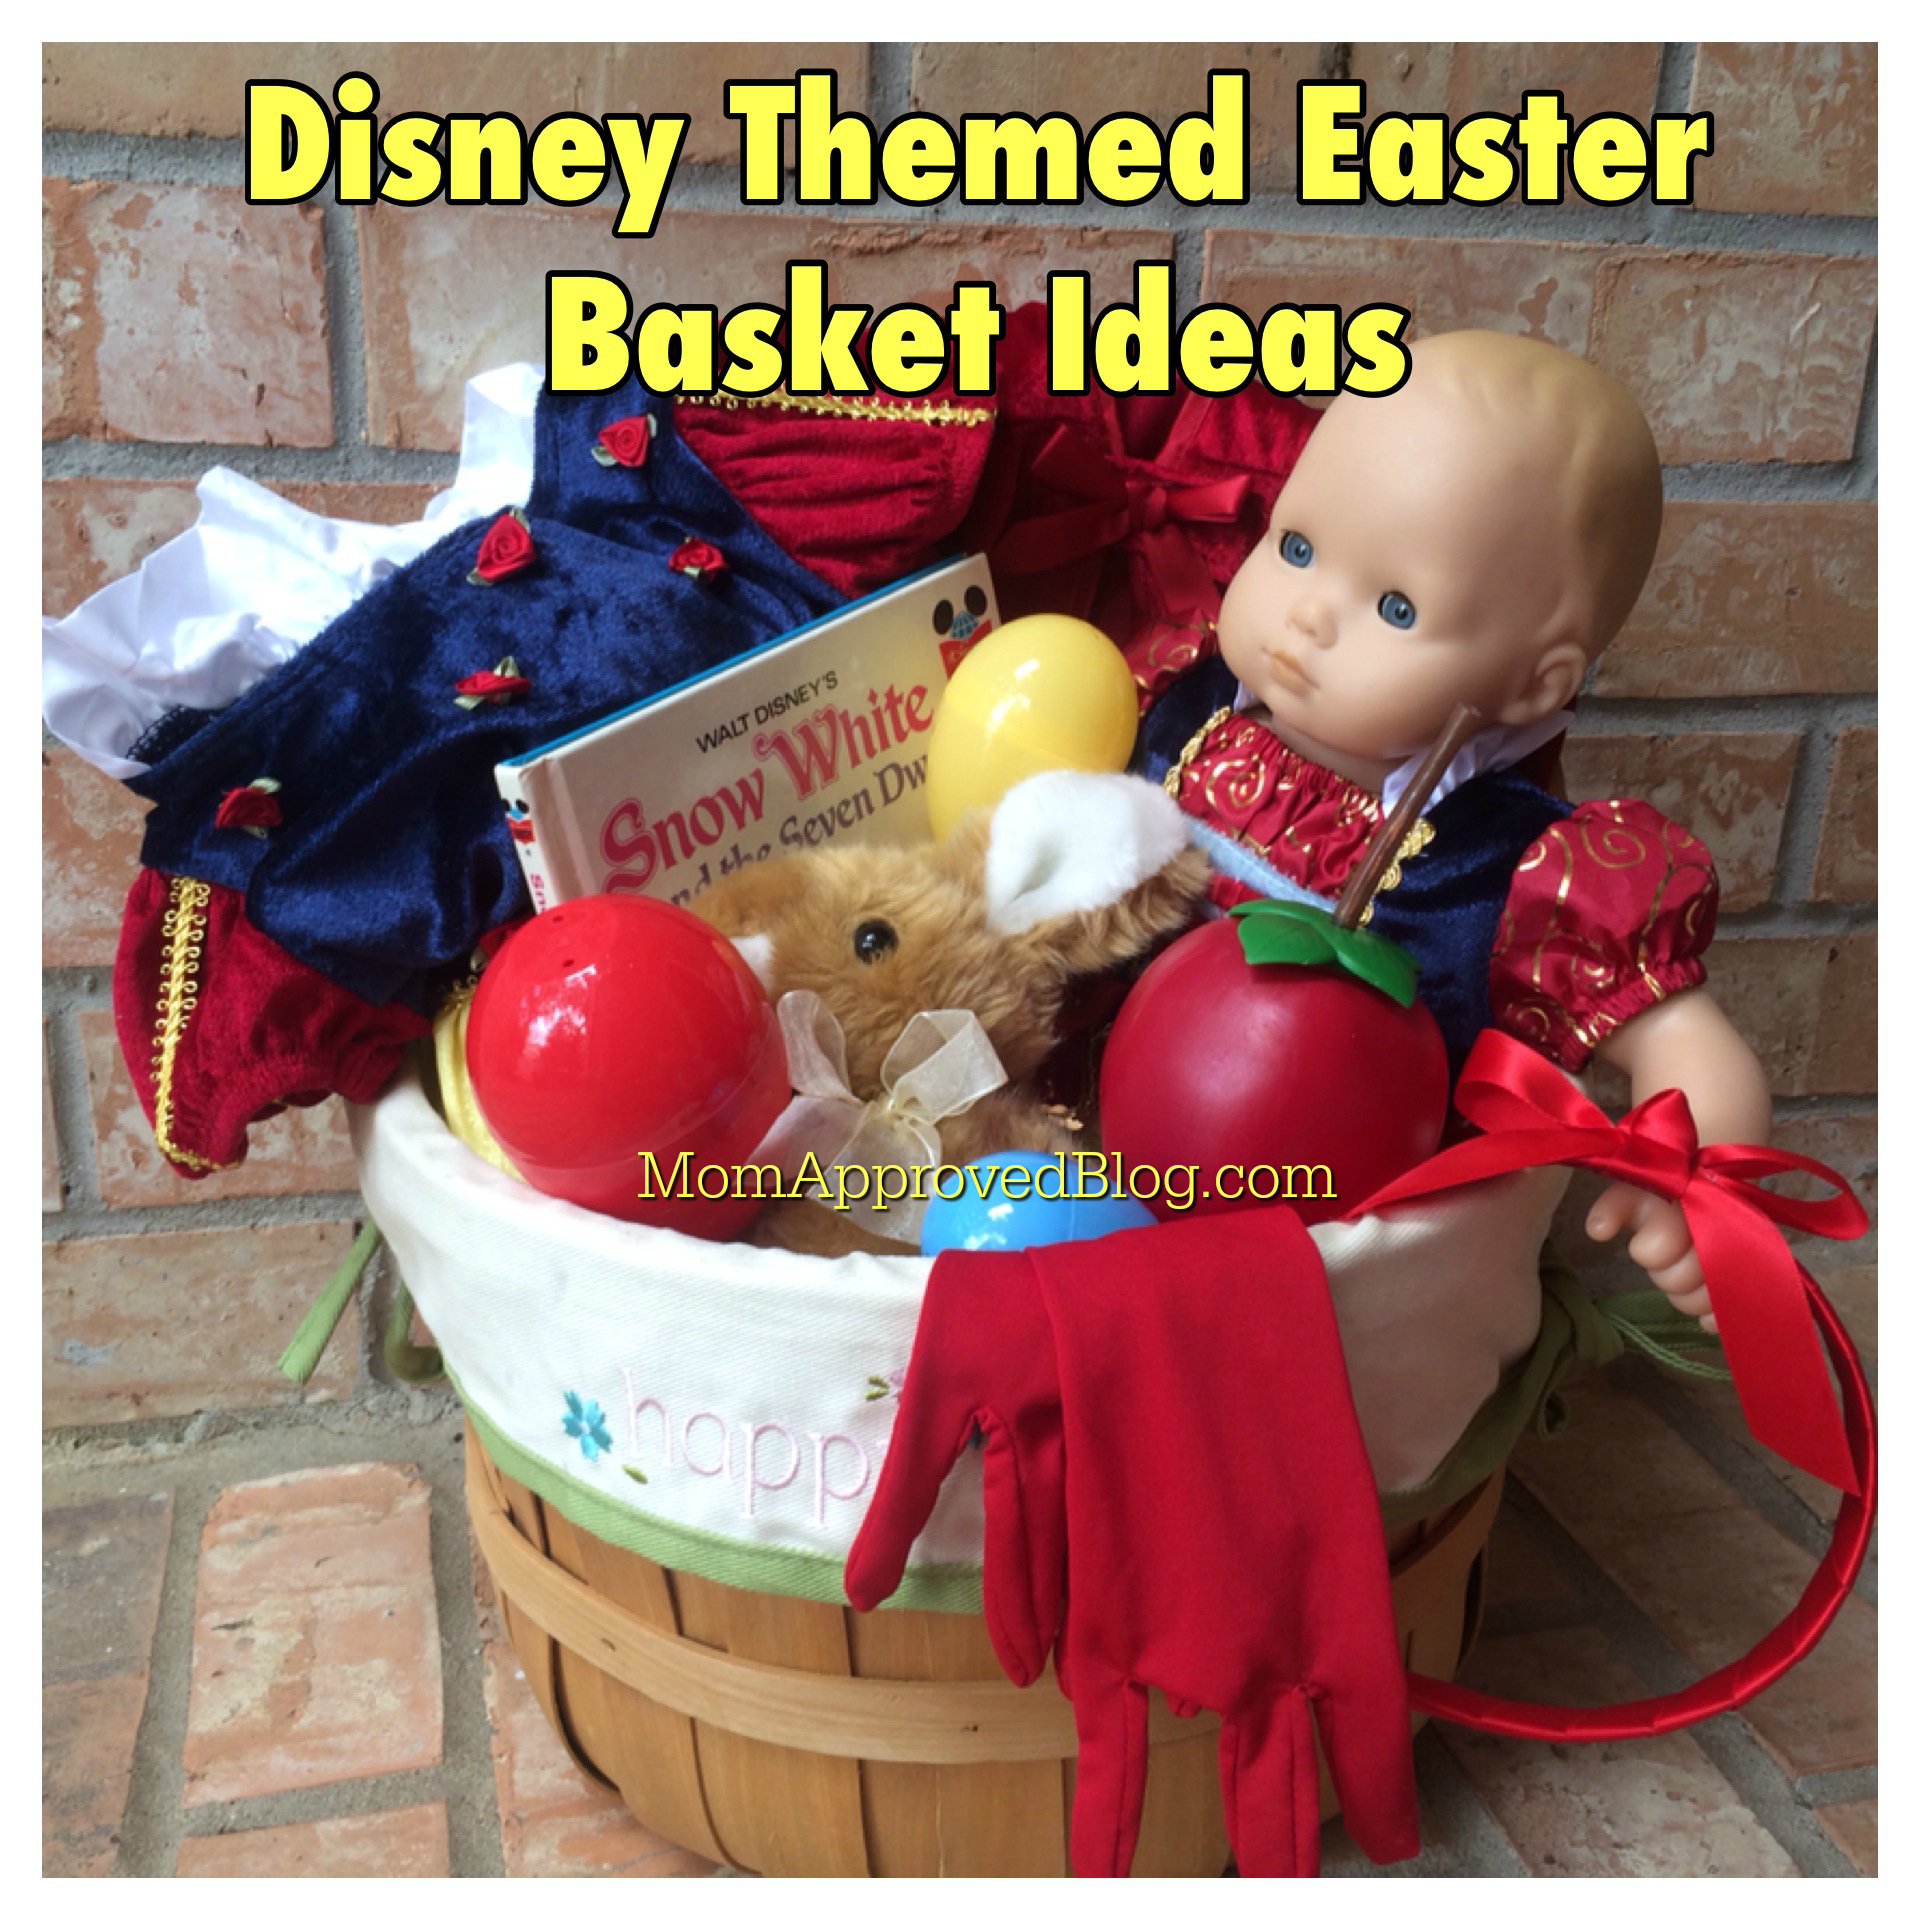 Disney easter basket disney themed easter basket ideas for your disney loving kids negle Choice Image